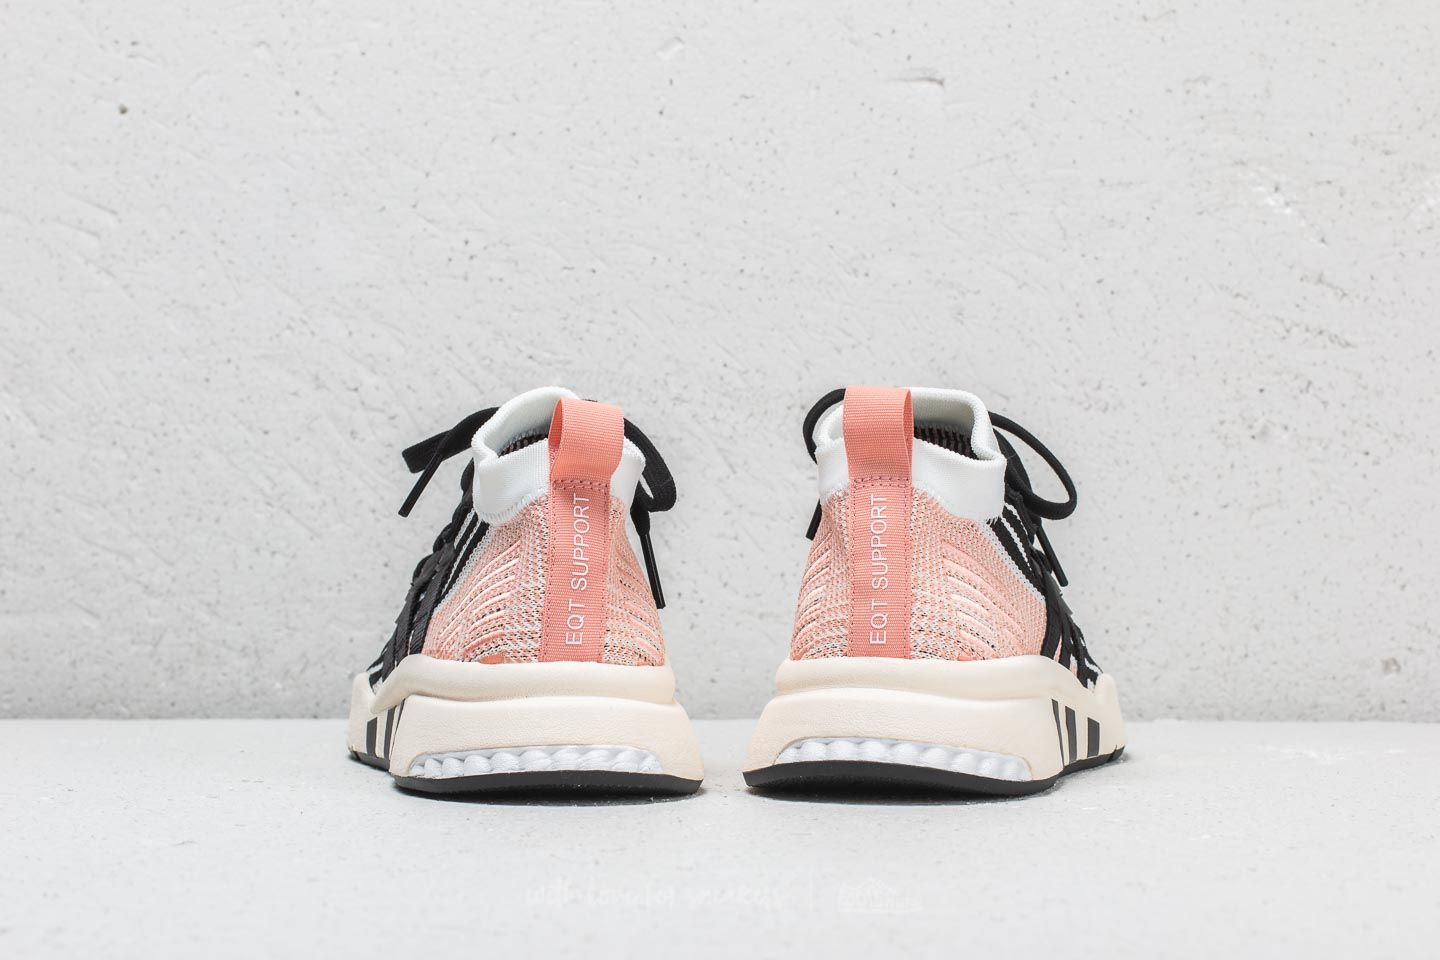 timeless design 451e4 47ee8 Adidas EQT Support Mid ADV PK Cloud White Core Black Trace Pink za skvělou